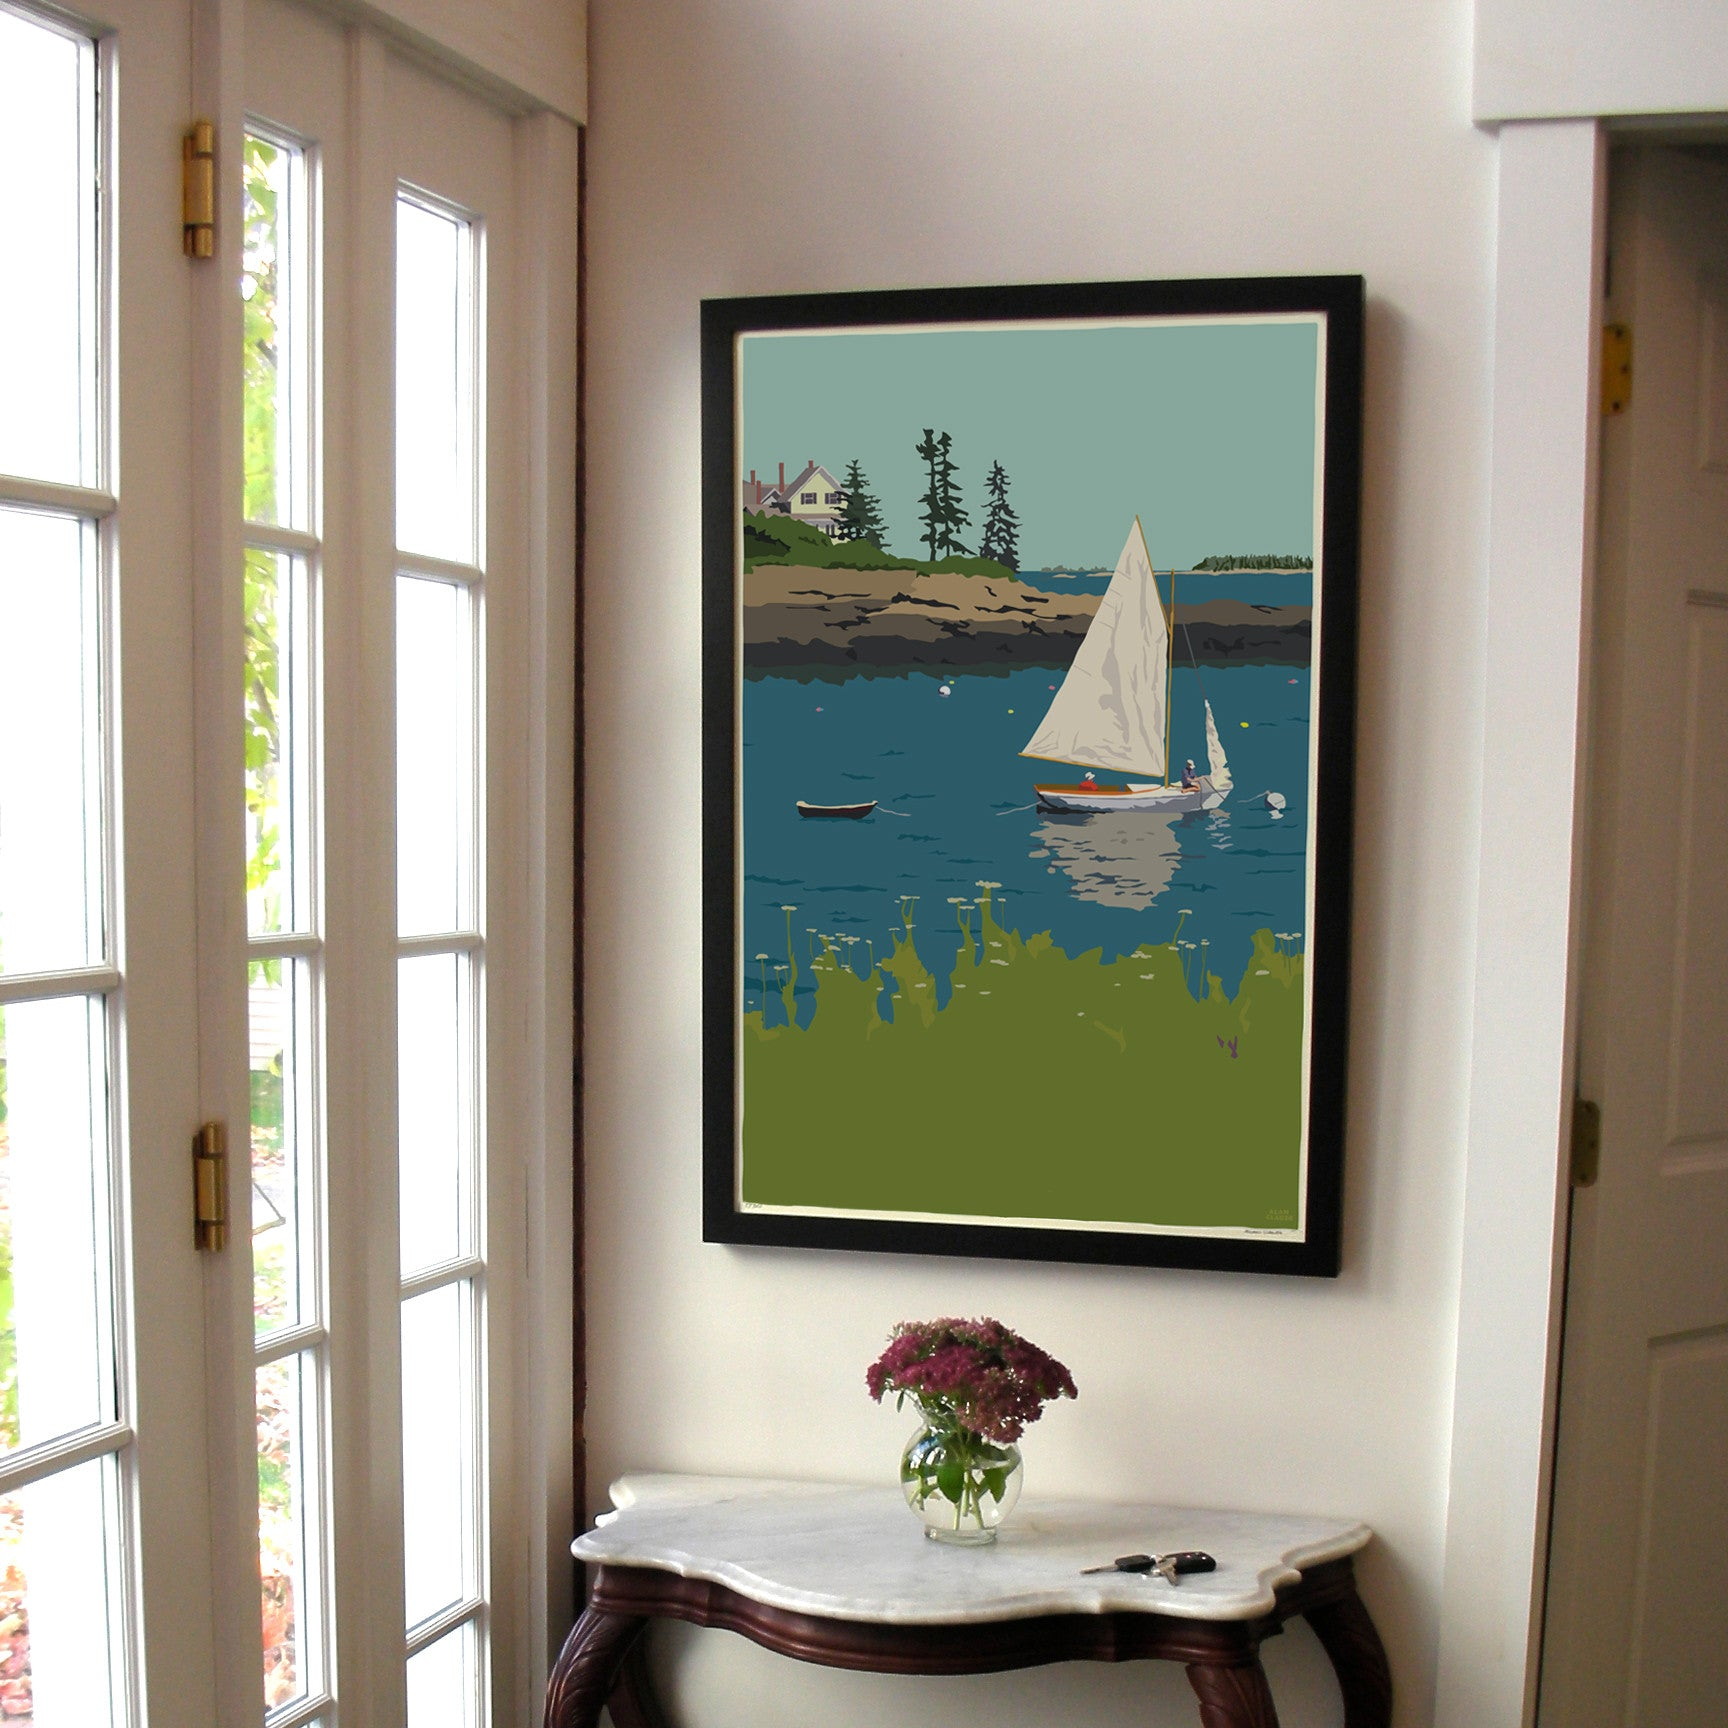 sailing long cove art print 24 x 36 framed wall poster maine alan claude. Black Bedroom Furniture Sets. Home Design Ideas